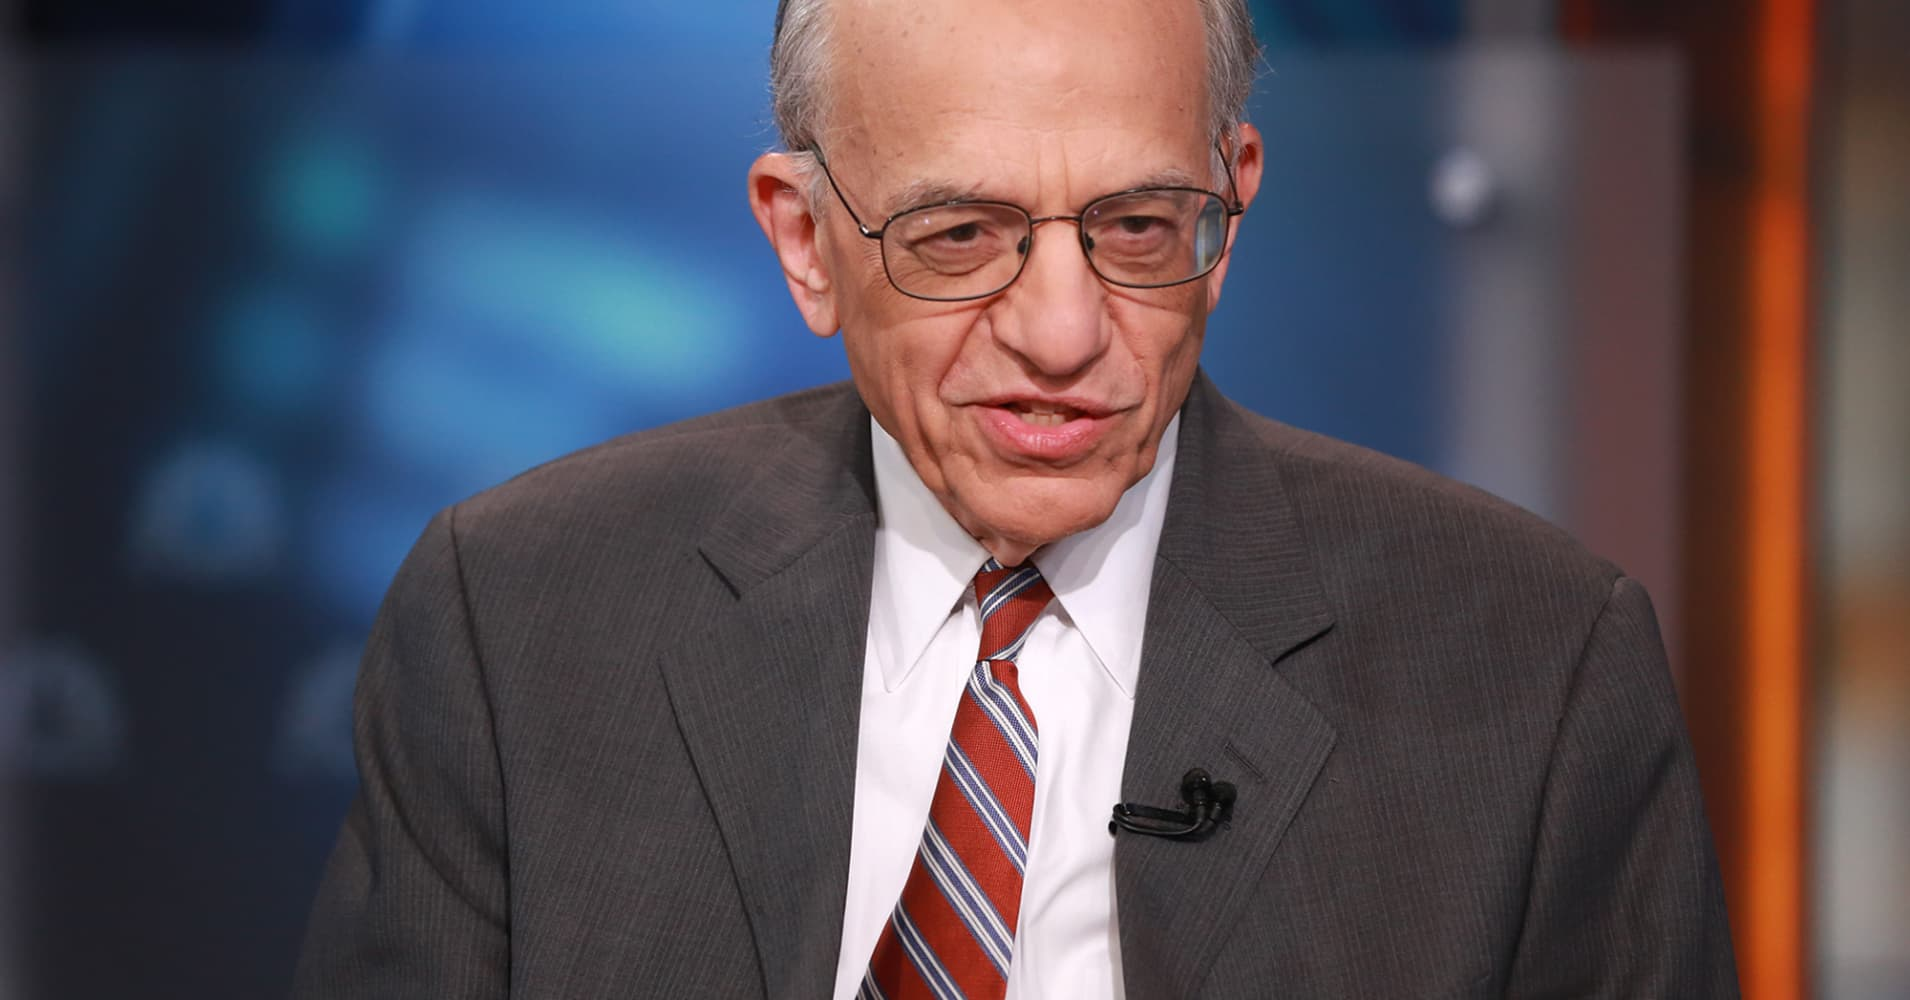 Professor Jeremy Siegel warns the stock market may not see its typical post-midterm surge next year